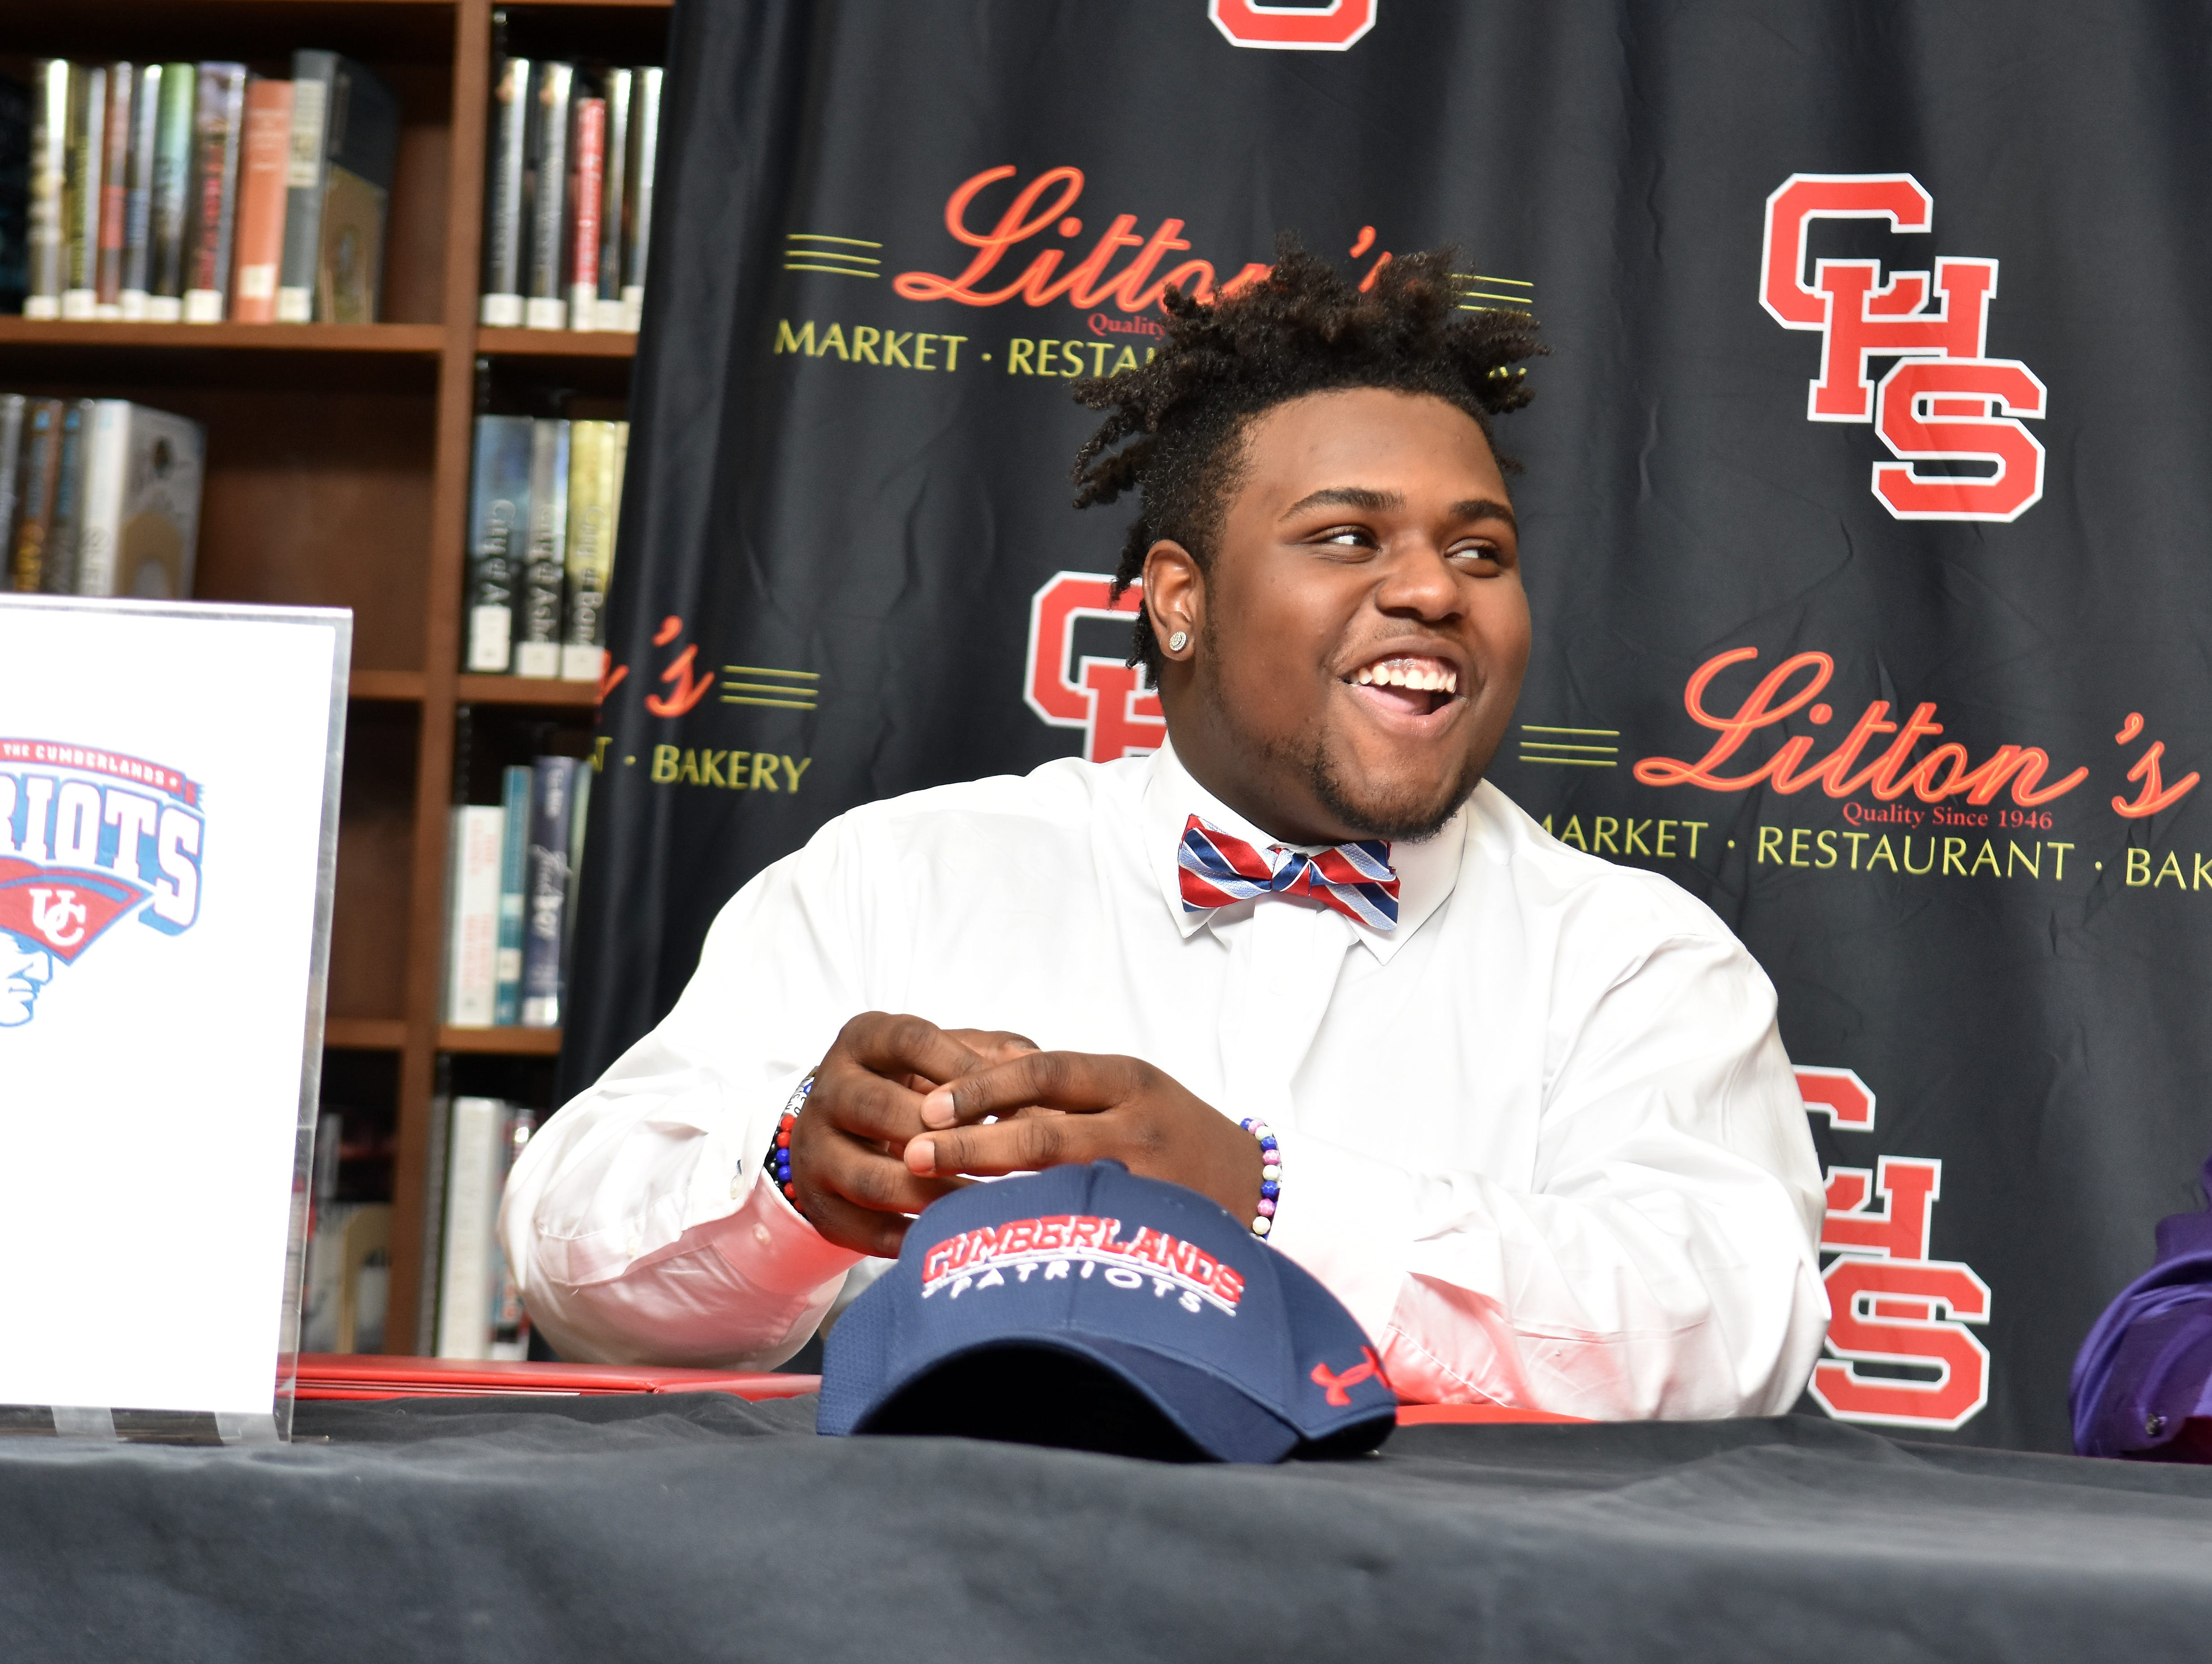 Central High's Jalynn Clemons signed to play football at the University of the Cumberlands on his signing day, Monday, Feb. 11, 2019.